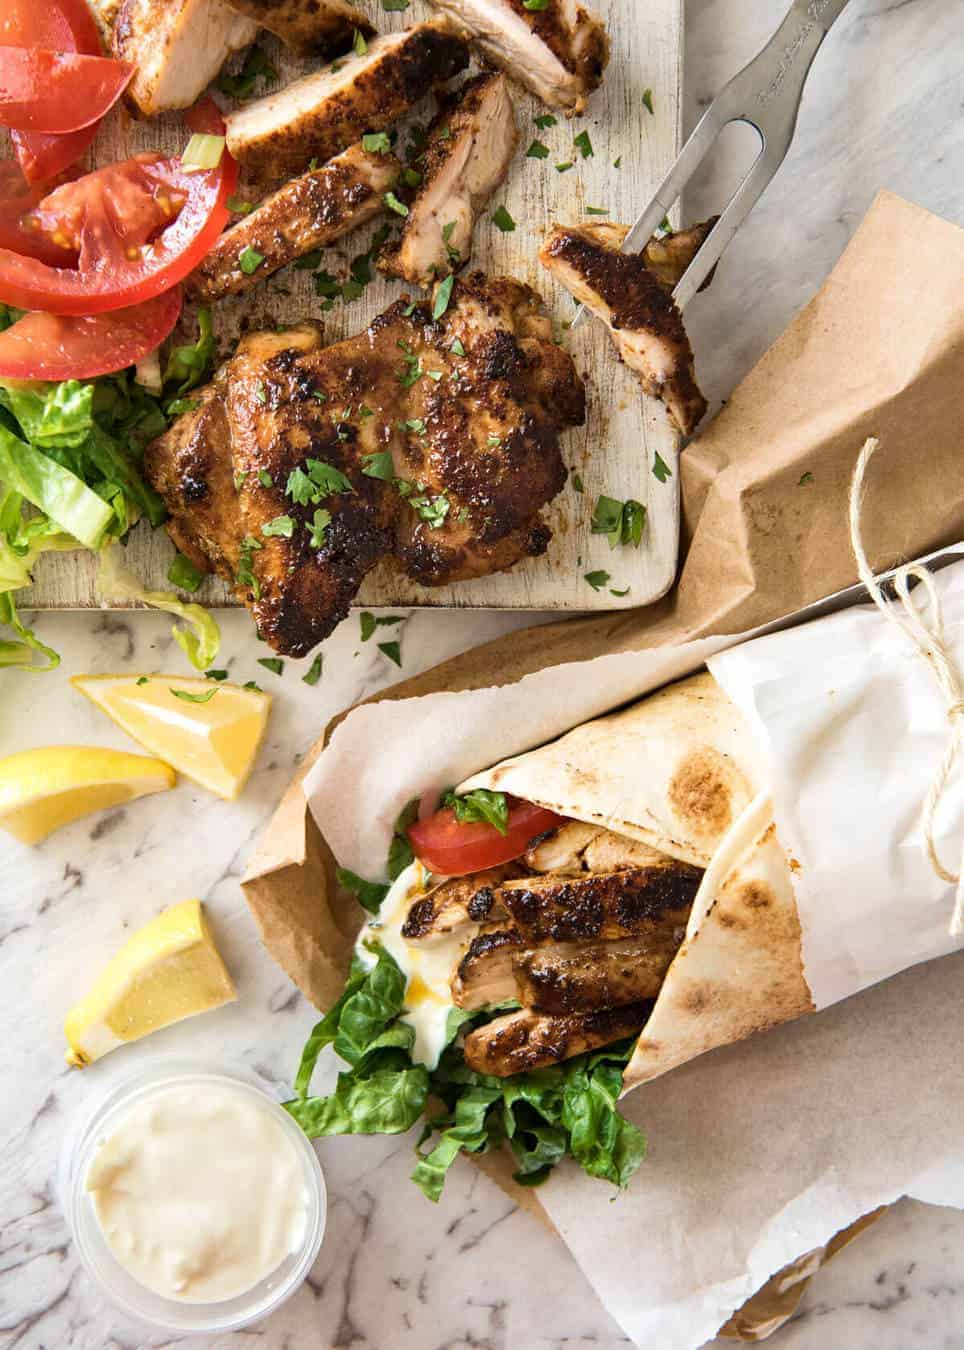 The flavour of this Chicken Shawarma marinade is absolutely incredible, yet made with just a handful of everyday spices. recipetineats.com